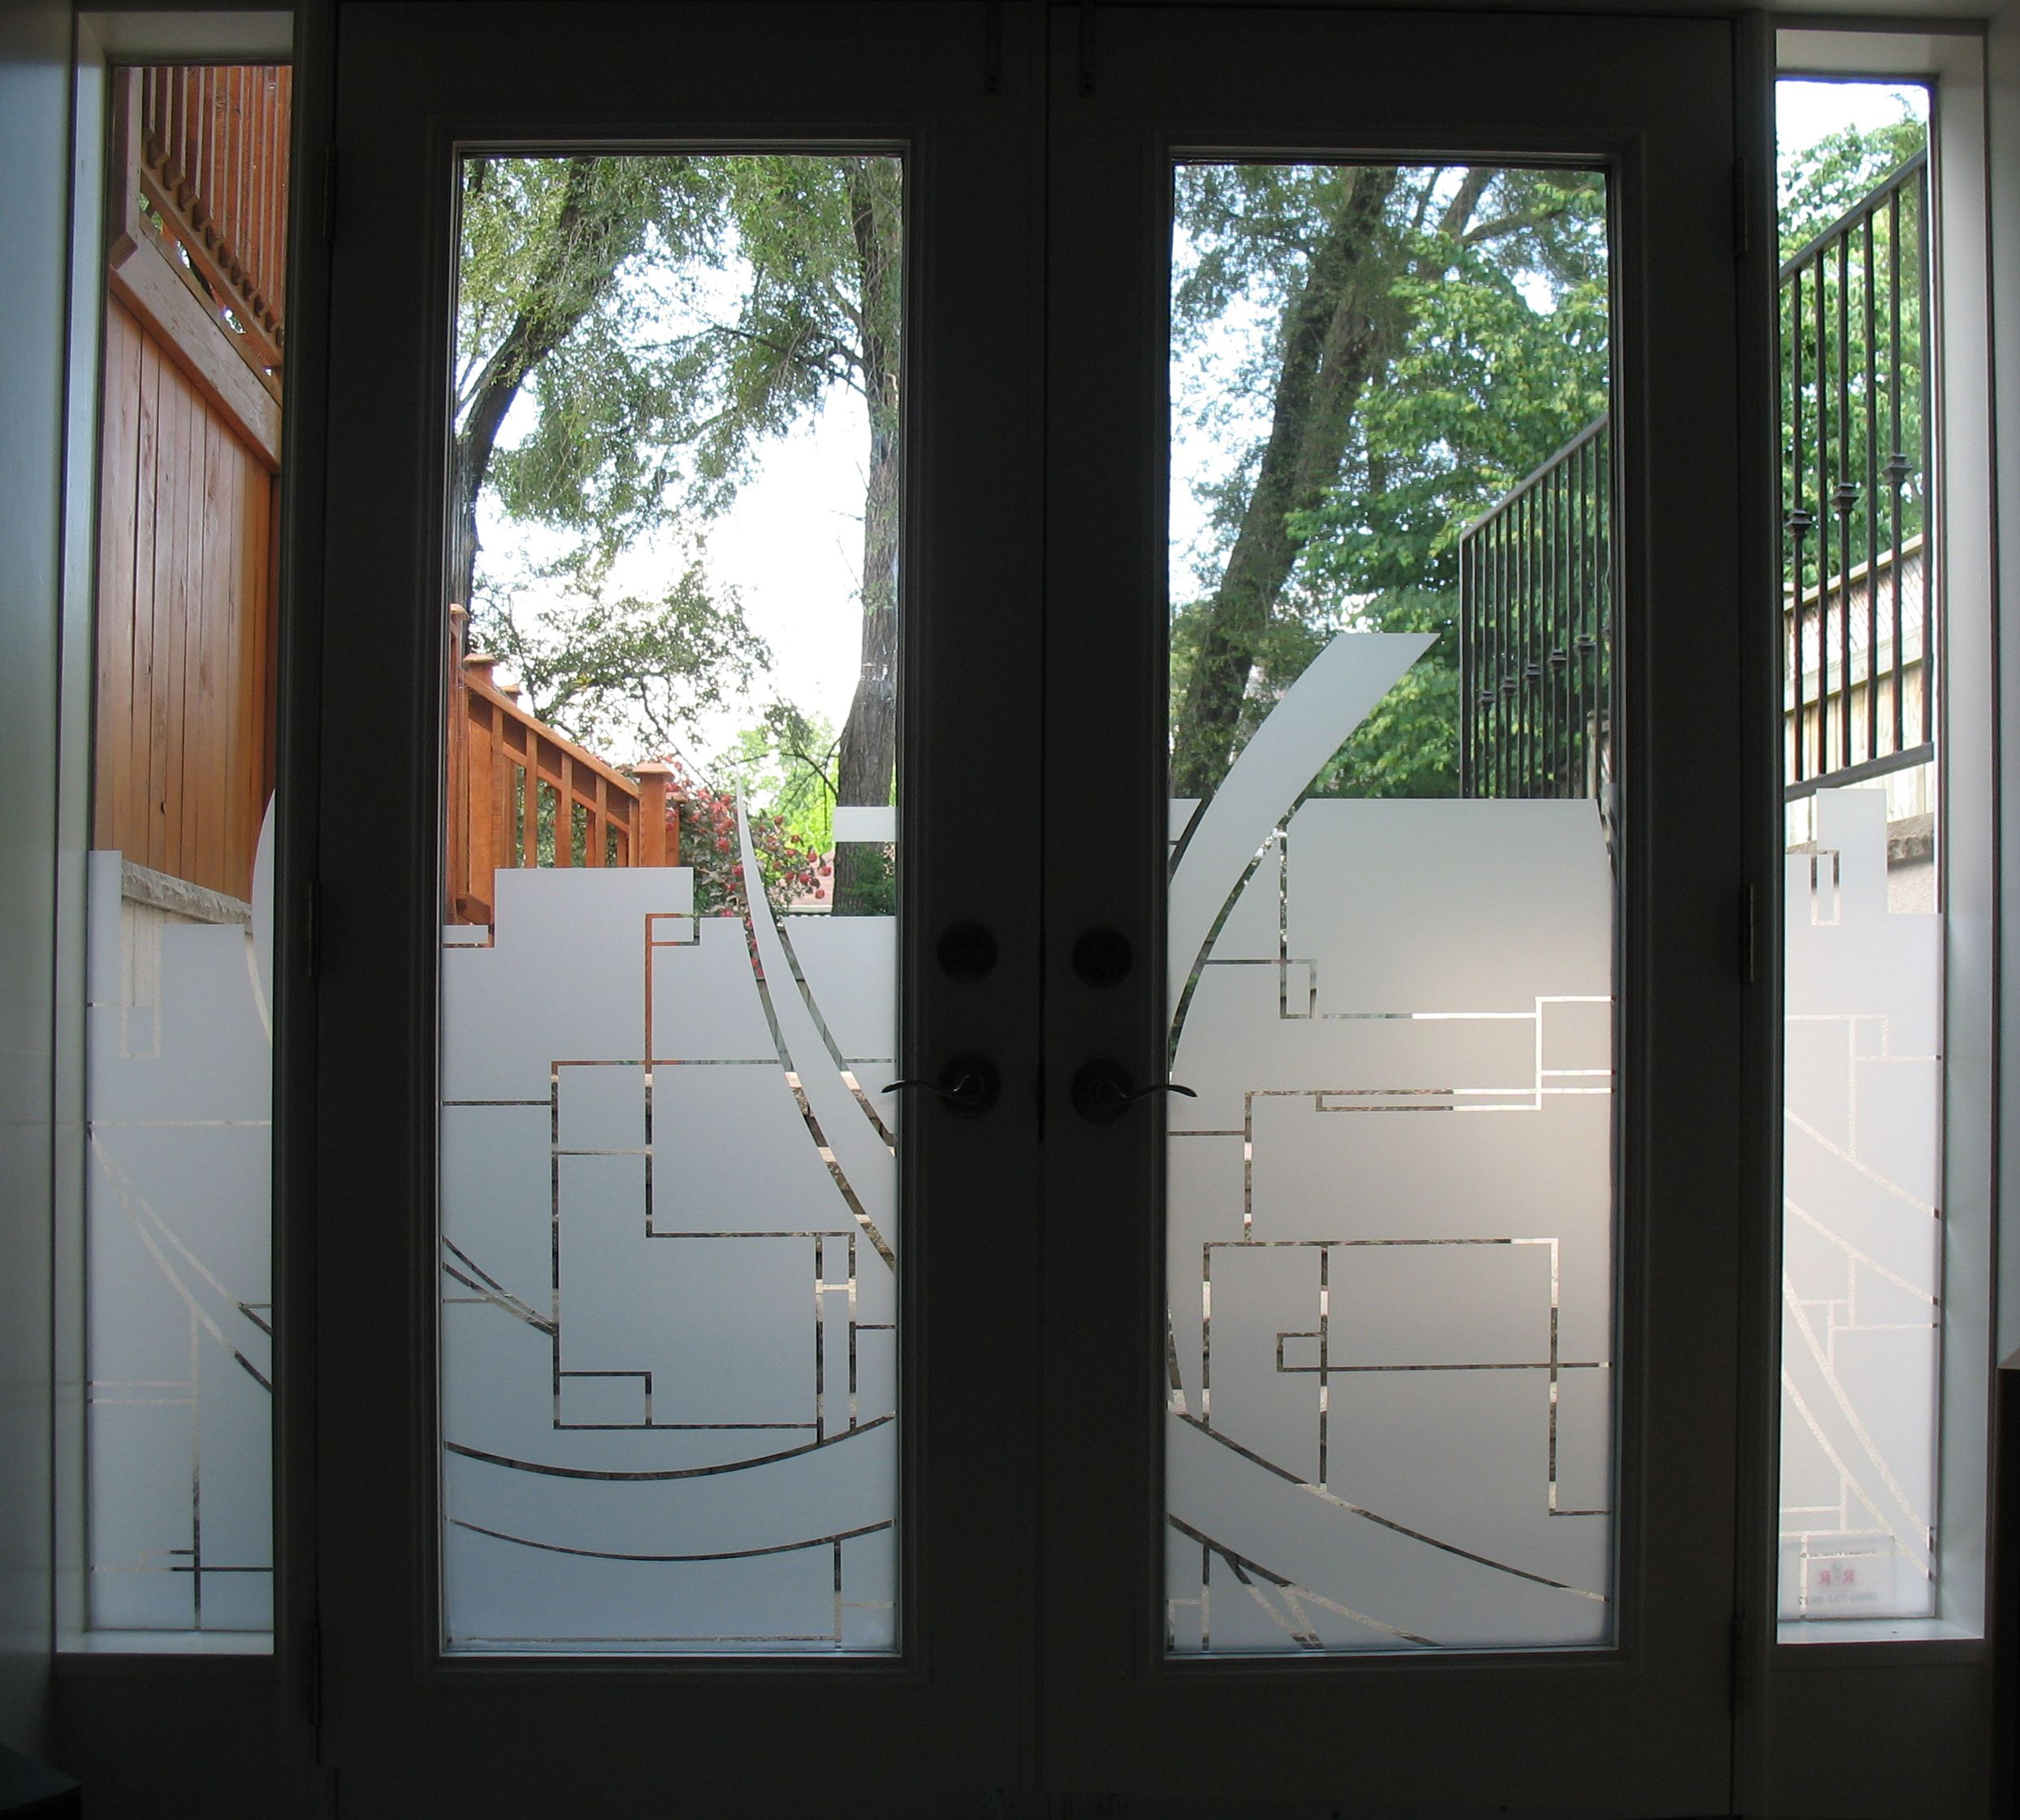 Custom Decorative Window Film custom graphics cut in frost on residential door | window graphics